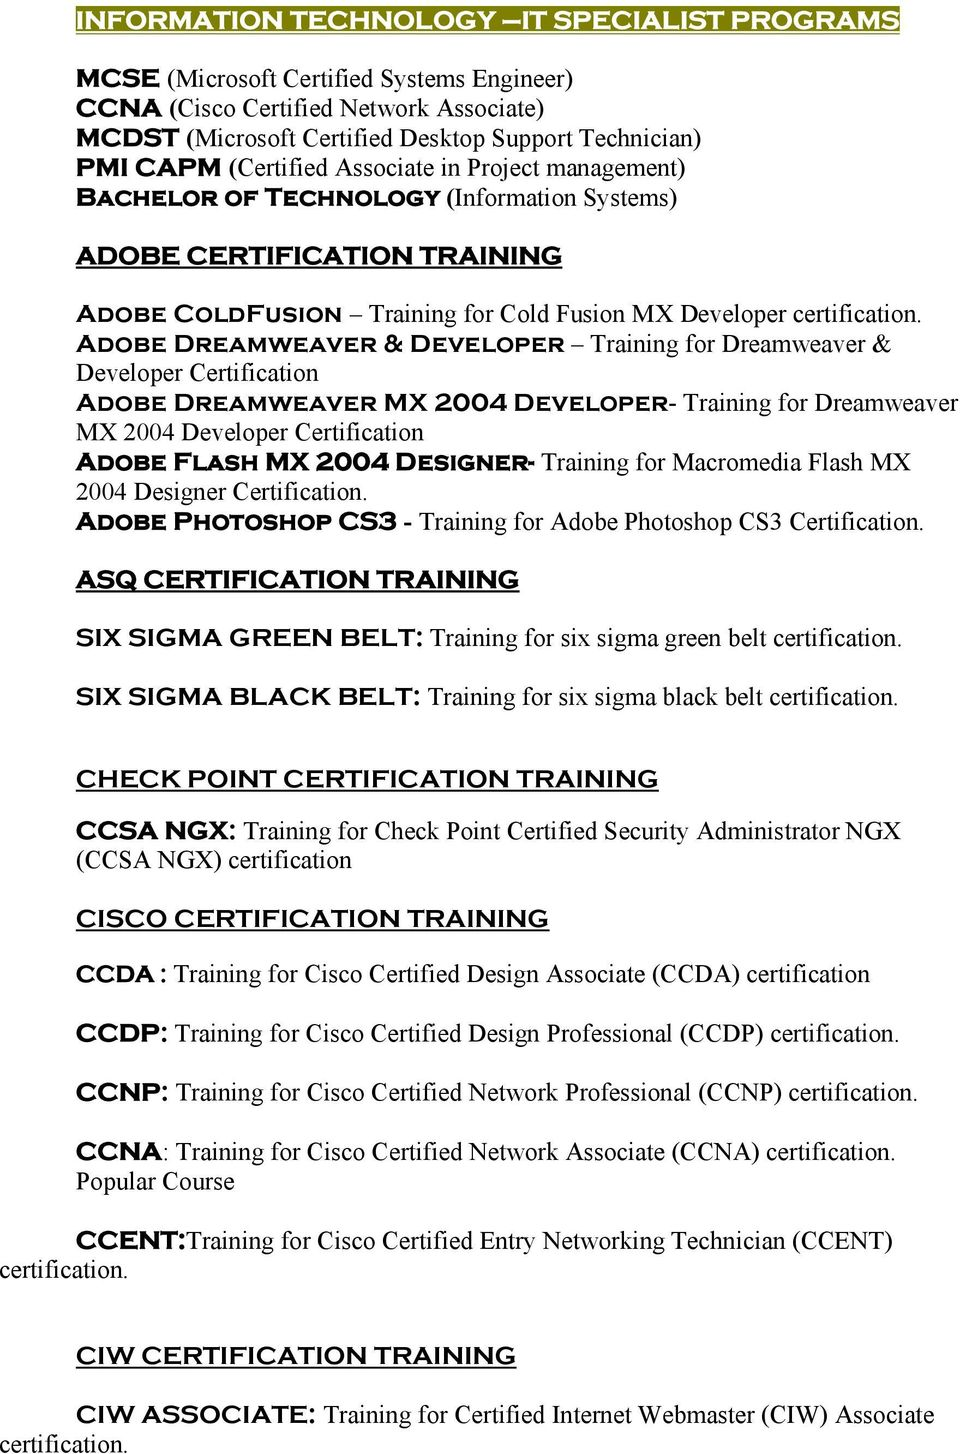 Developer Training for Dreamweaver & Developer Certification Adobe Dreamweaver MX 2004 Developer- Training for Dreamweaver MX 2004 Developer Certification Adobe Flash MX 2004 Designer- Training for